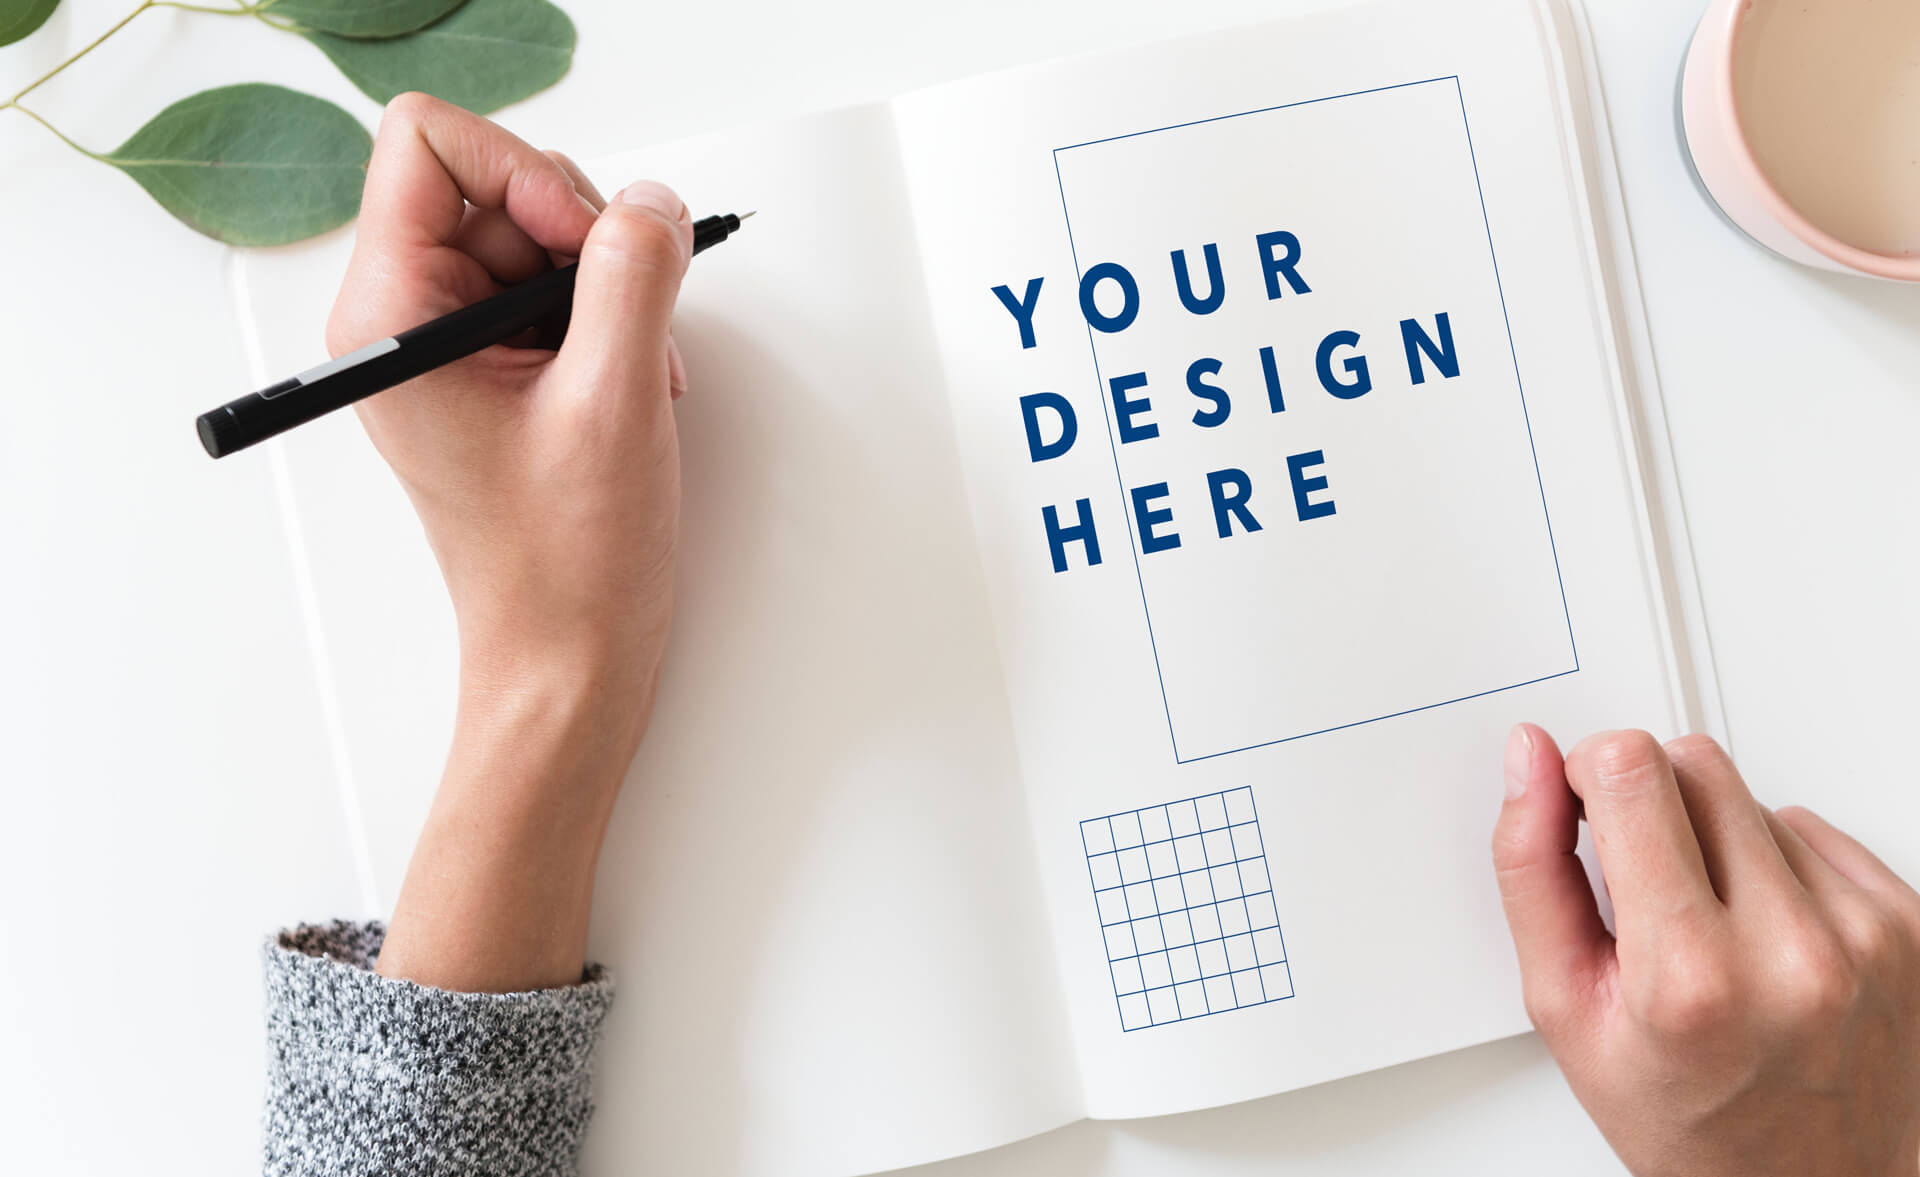 A person writes in a notebook that has a page that says 'Your Design Here'.